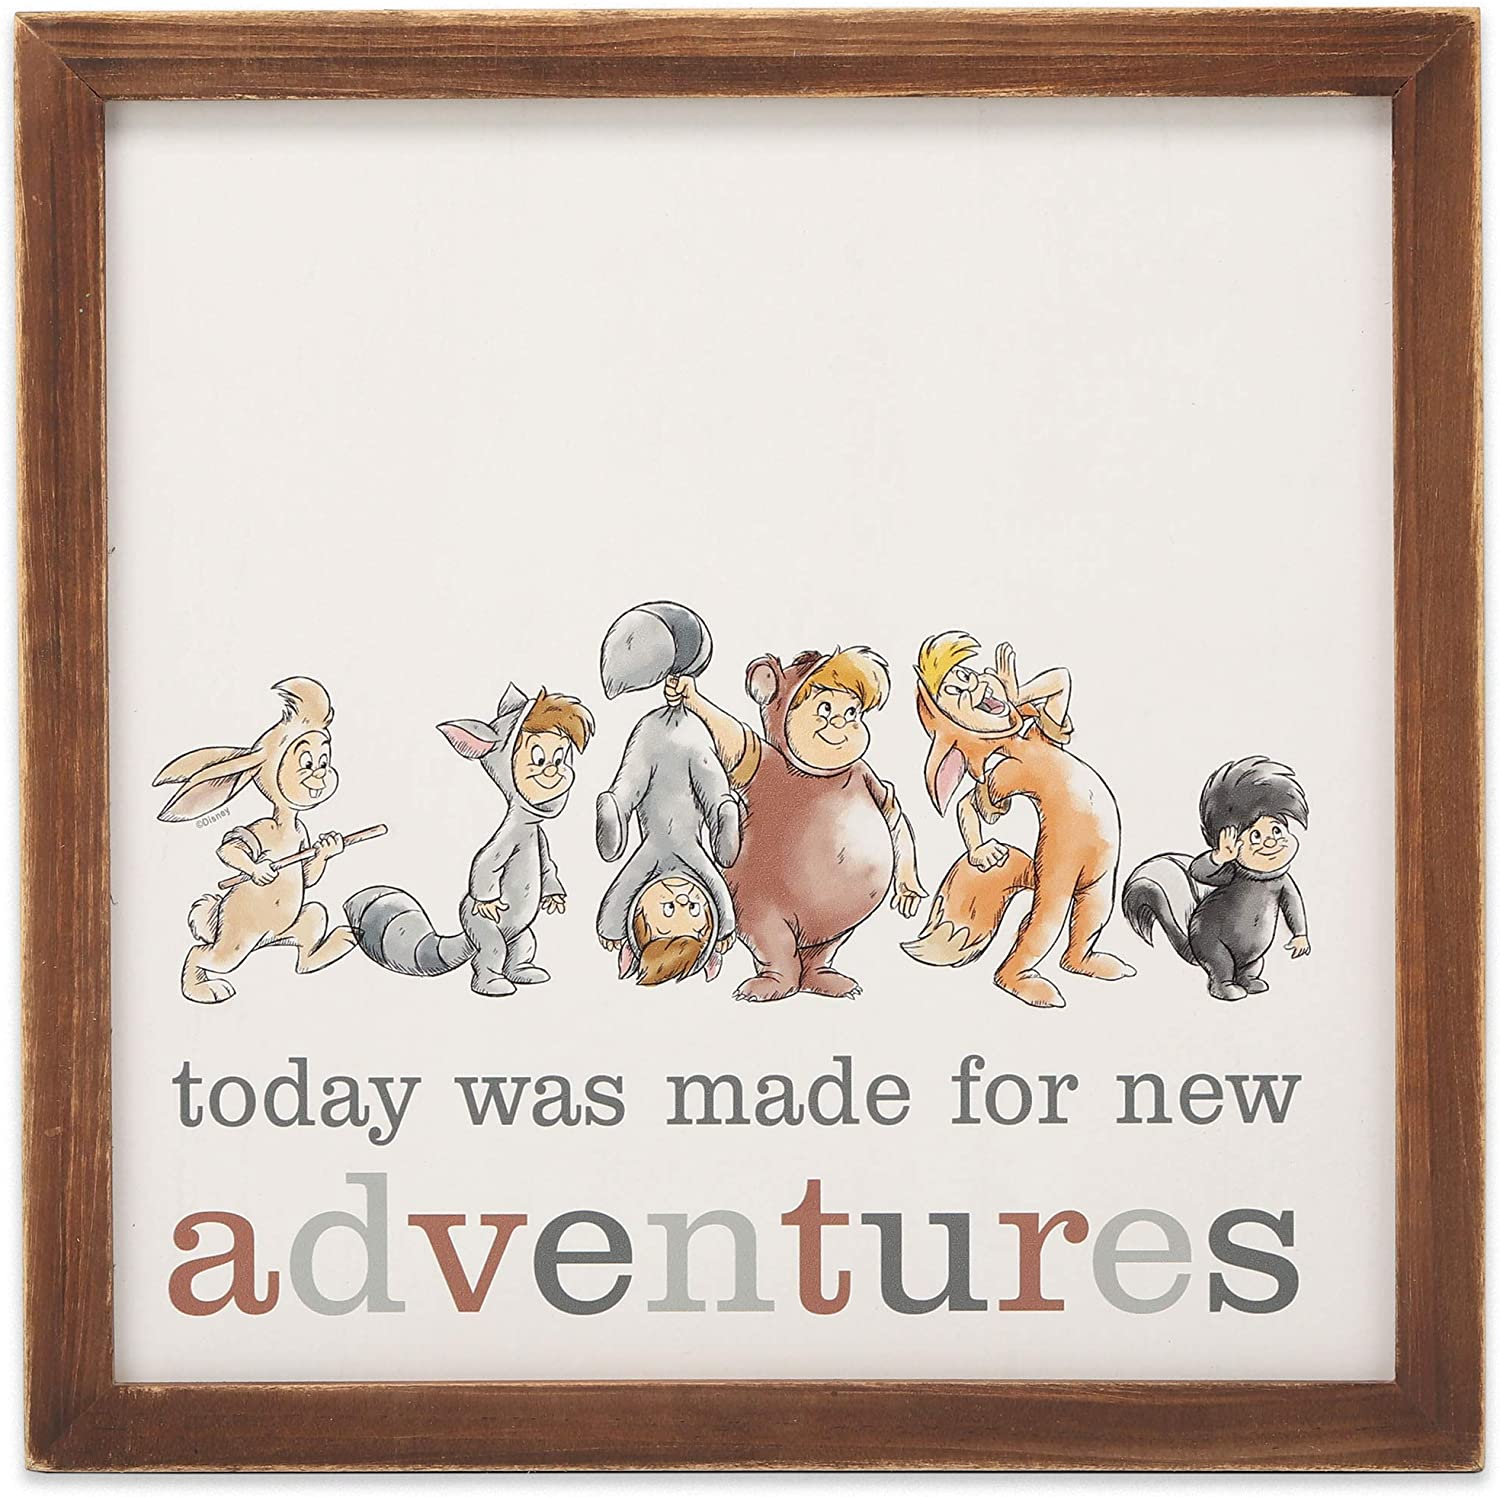 Open Road Brands Disney Peter Pan Lost Boys Made for Adventures Wood Wall Decor for Play Room, Kids' Bedroom, or Nursery